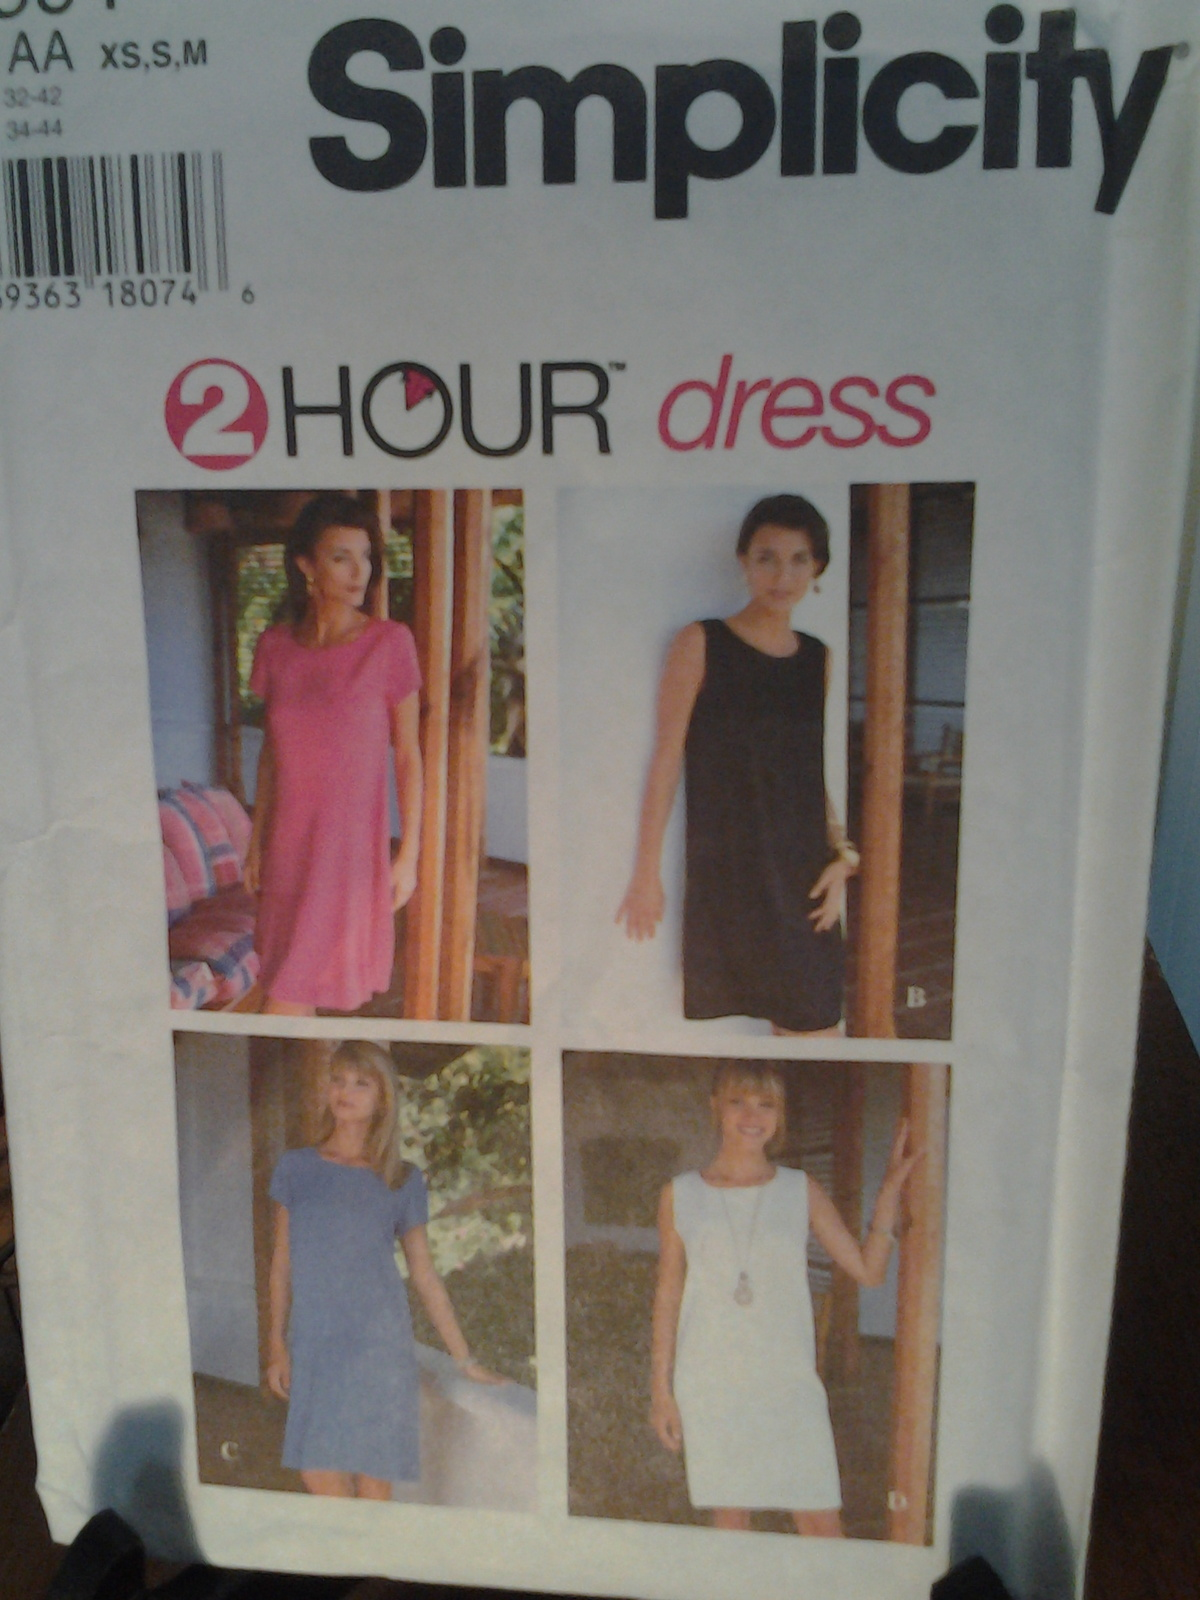 Primary image for Simplicity Pattern 9591 Two hour dress from 1996, New Uncut & Factory Folded